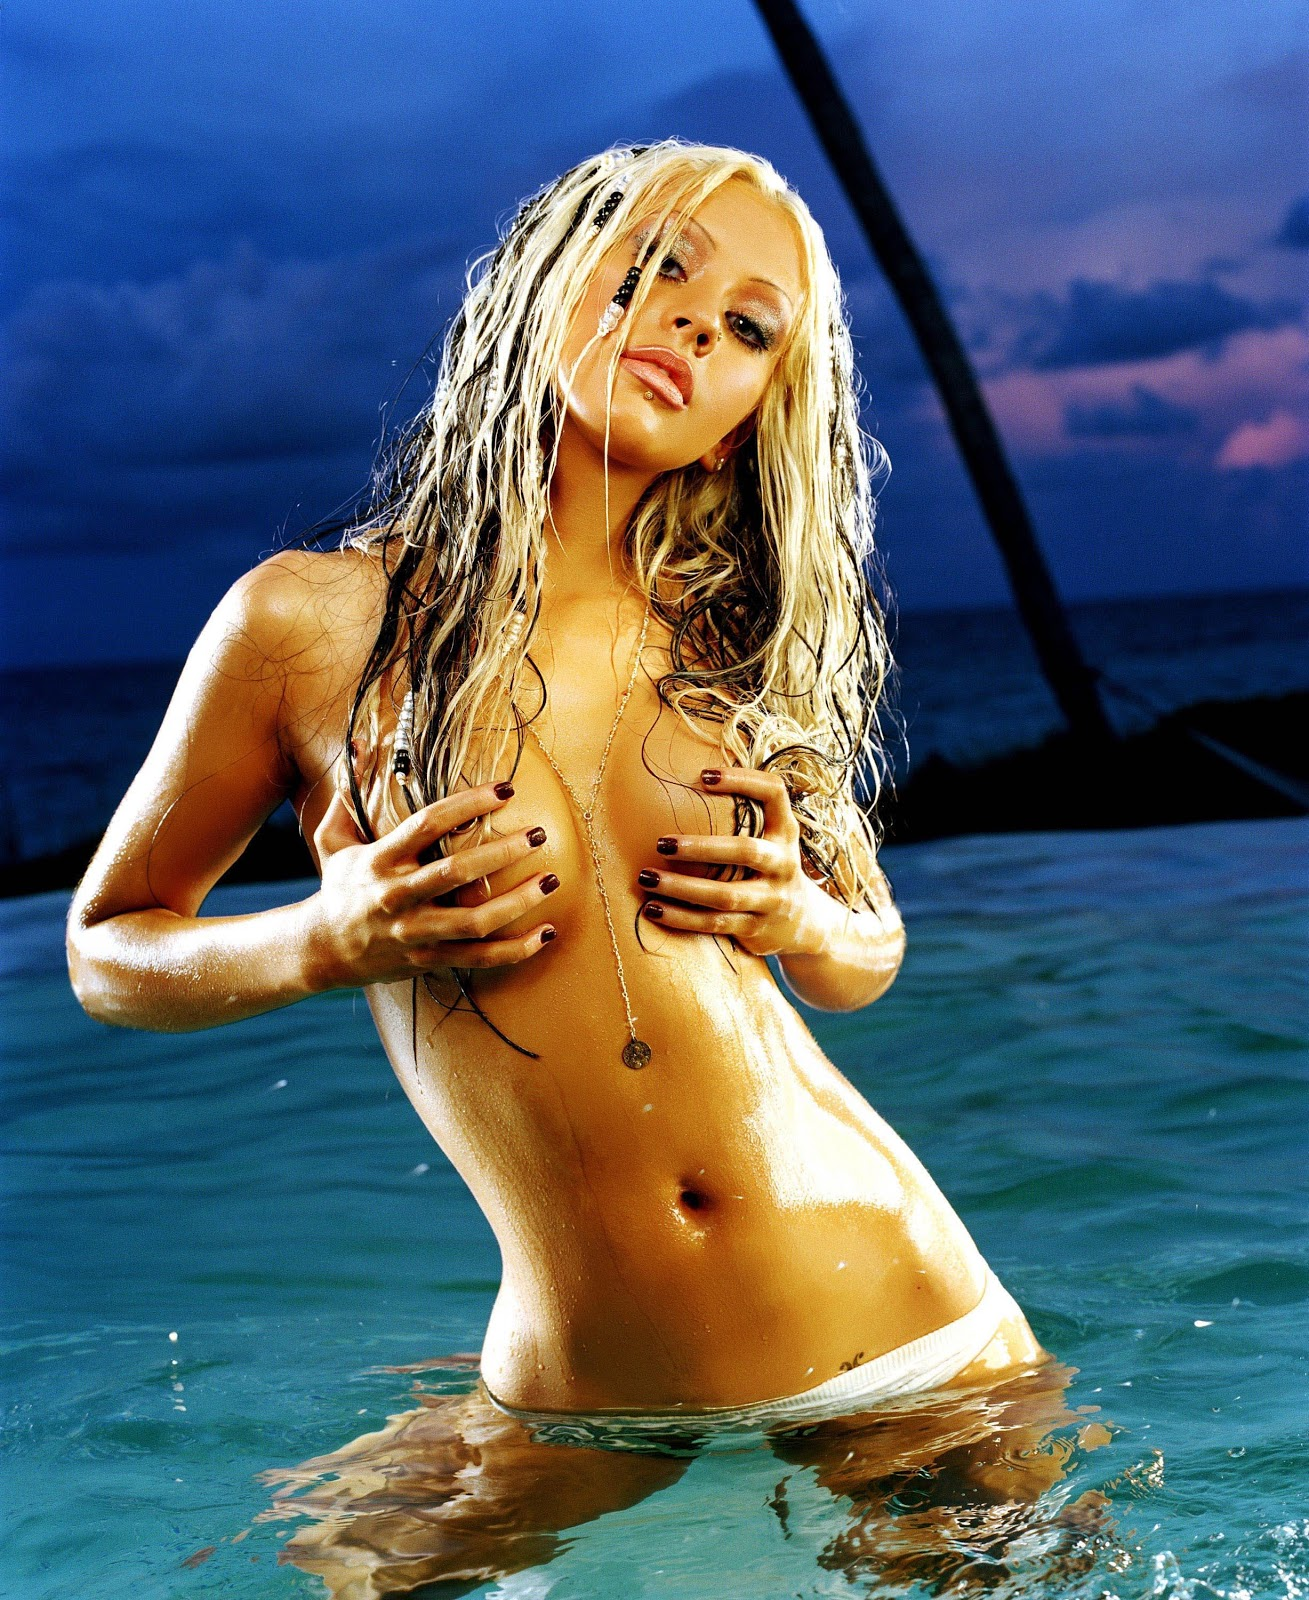 christina aguilera topless hd